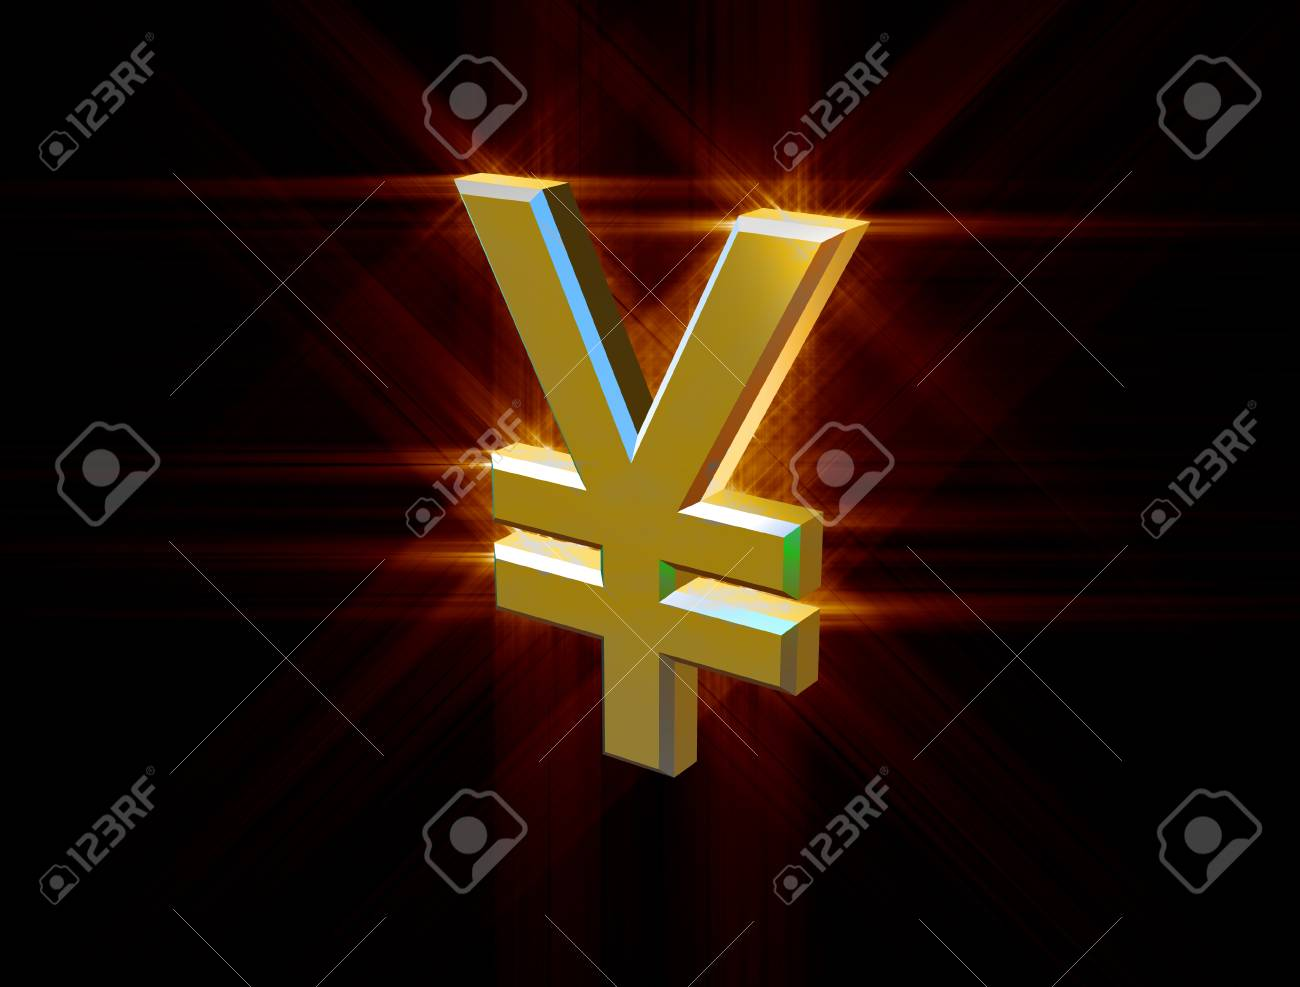 three-dimensional image of golden yen symbol among the colored rays - 74942940